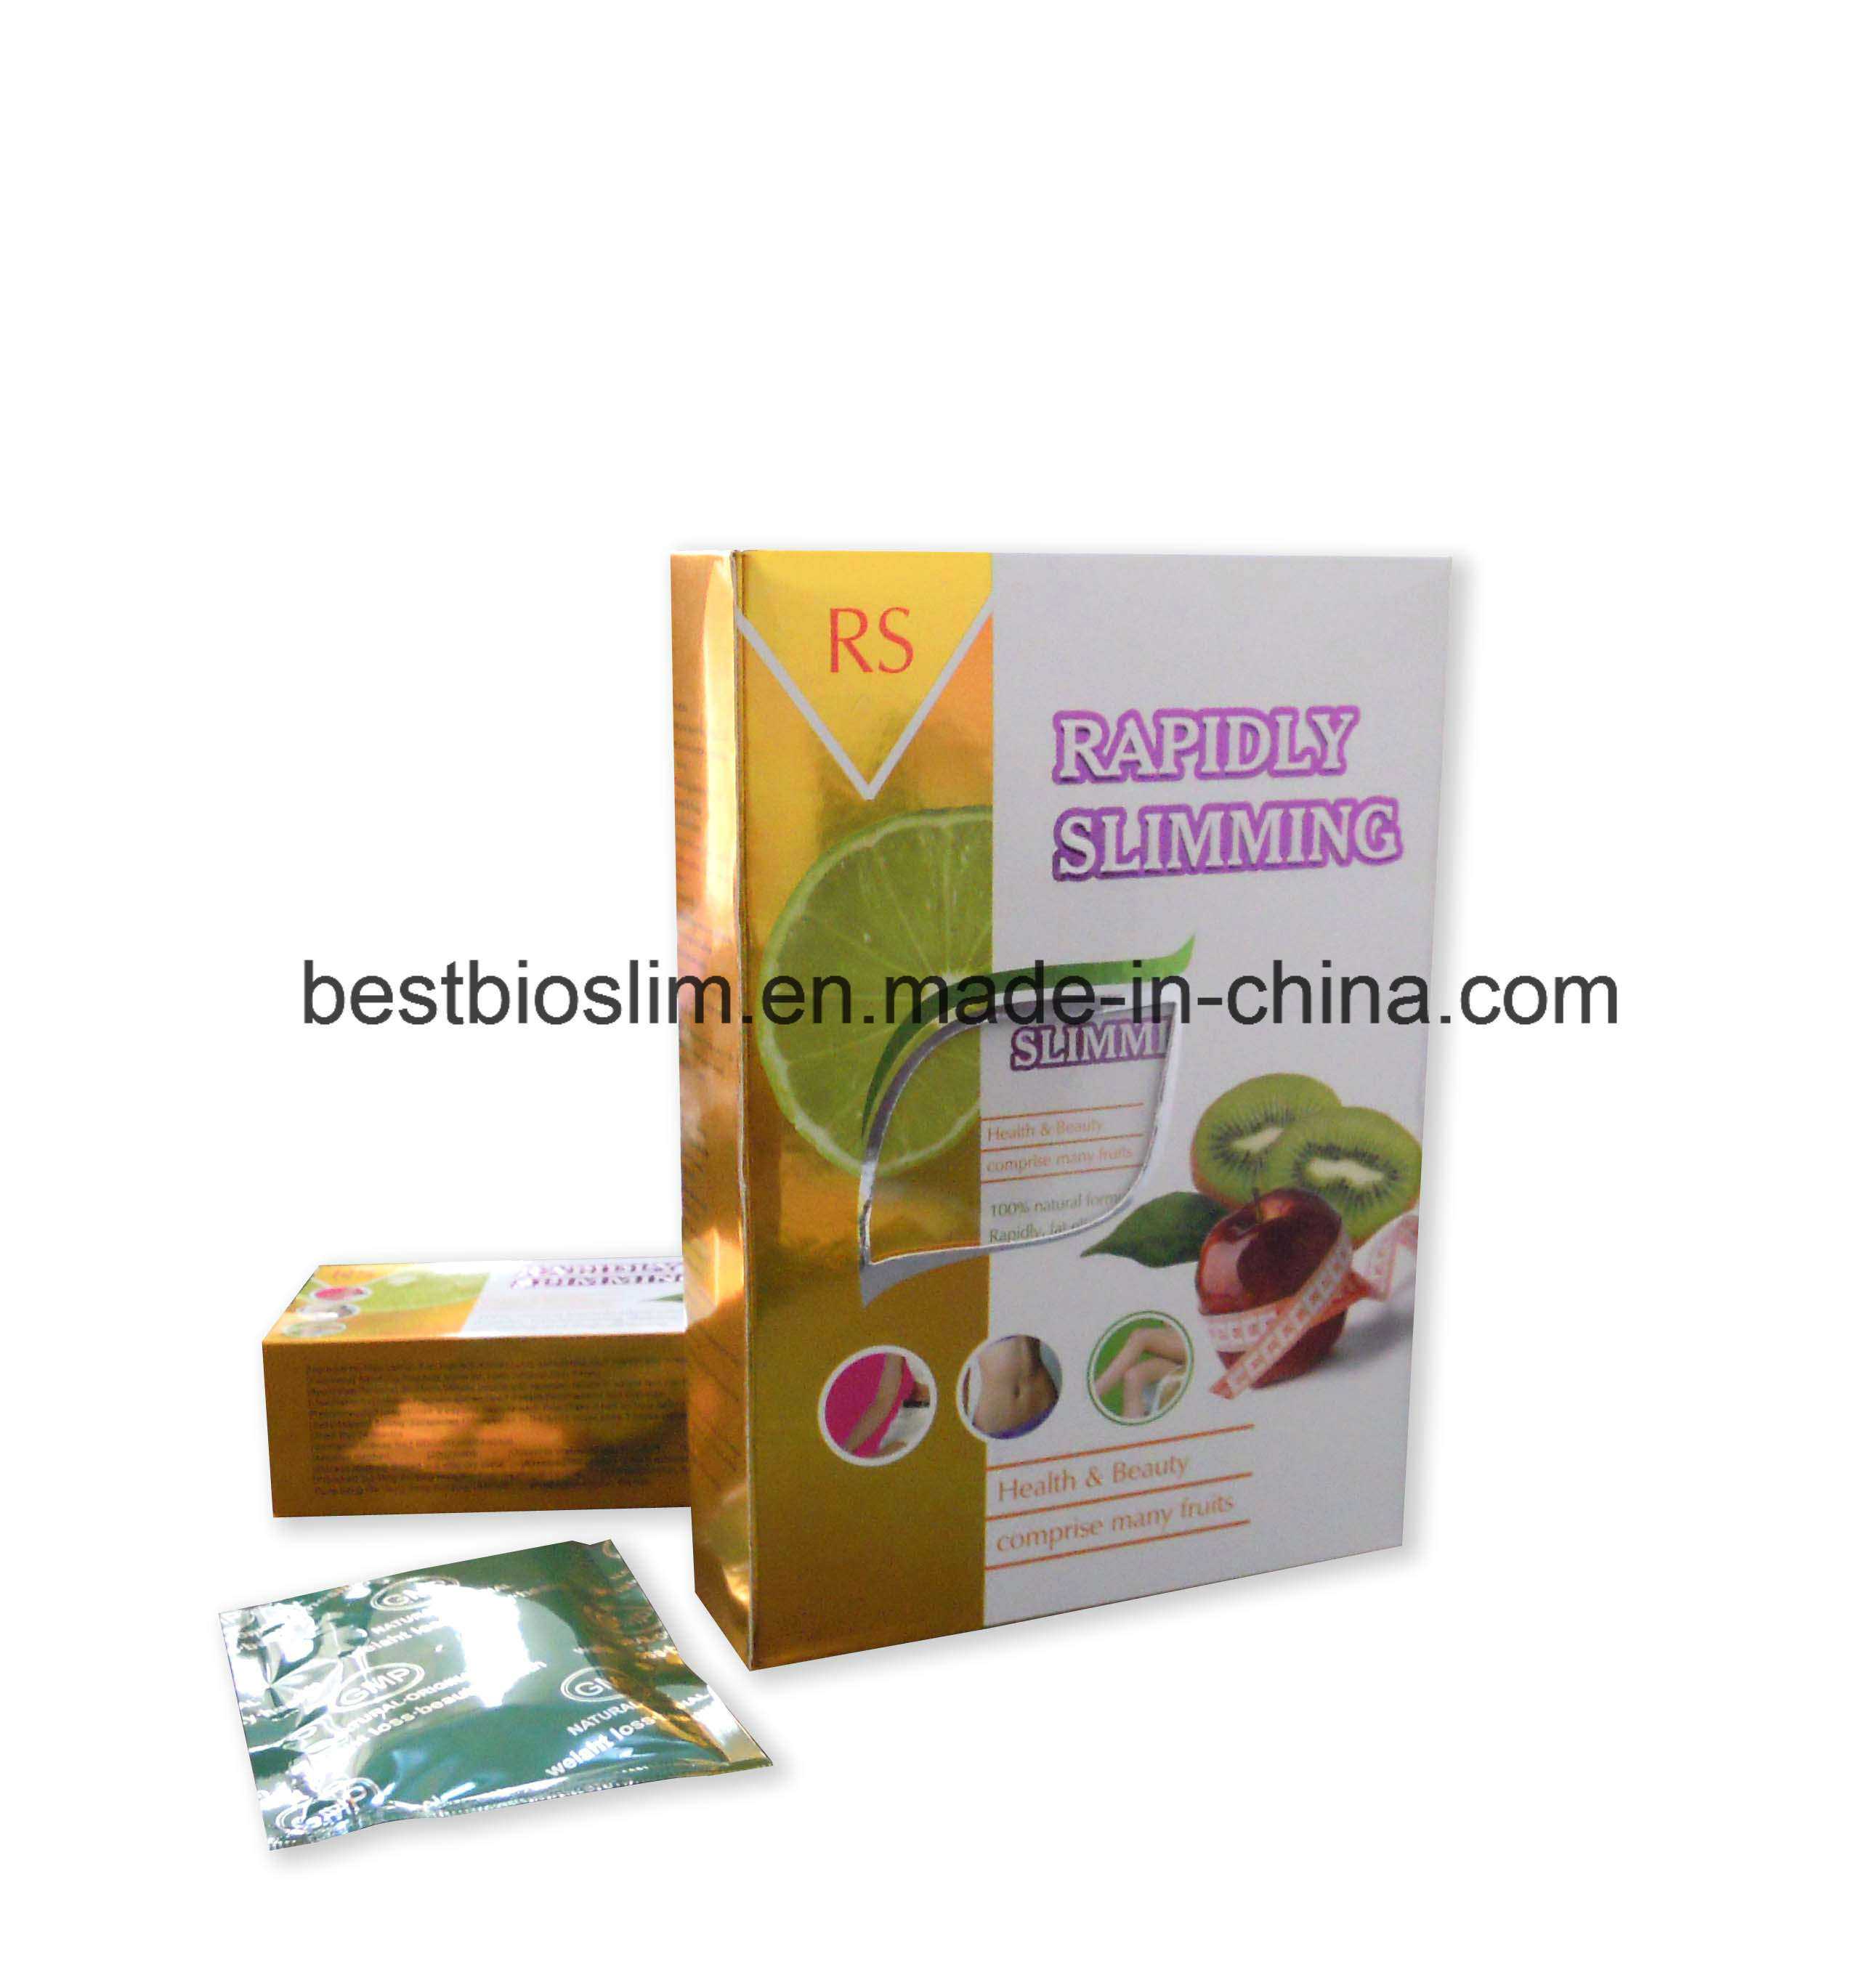 Original Rapidly Slimming Capsules Box Bottle Weight Loss Pearl Diet Pills